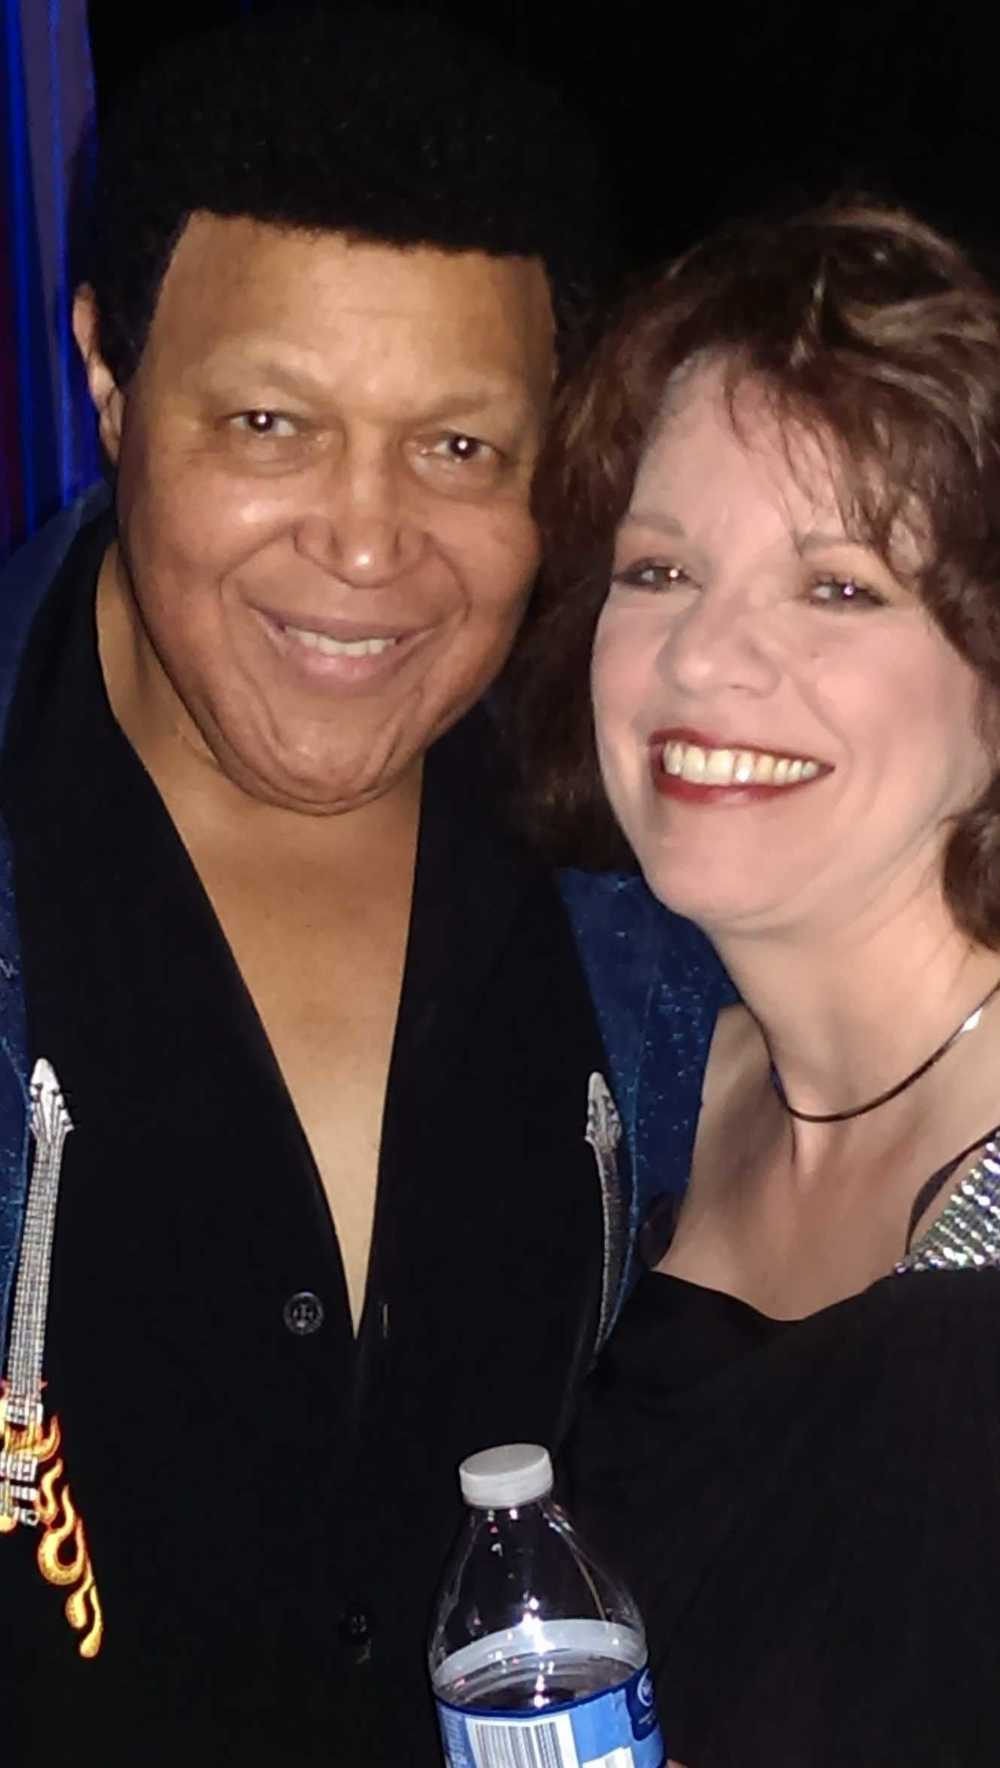 Chubby Checker and DG.JPG